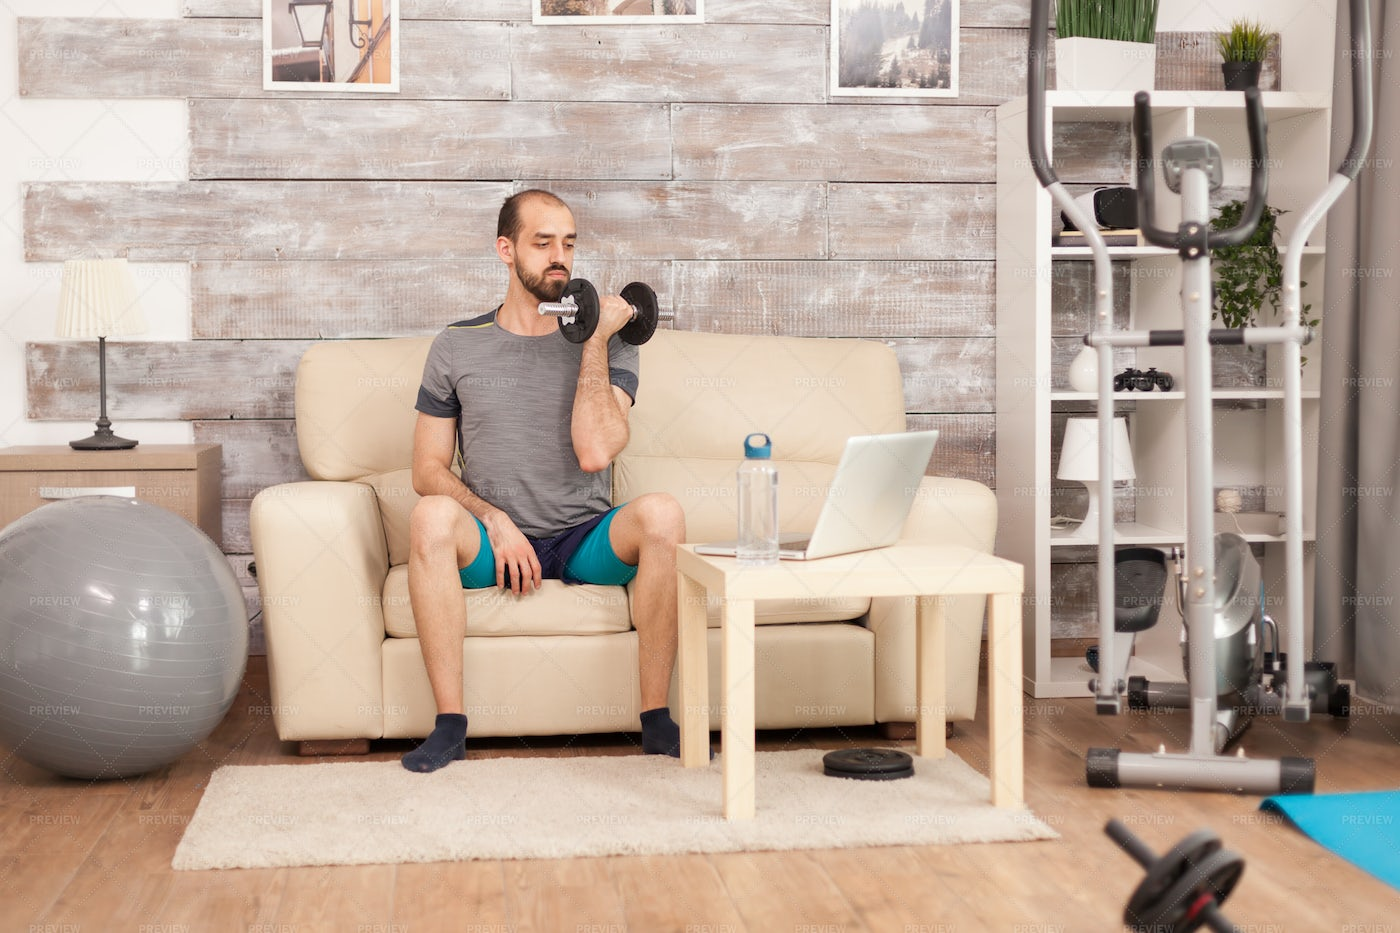 Dumbbell Curls At Home: Stock Photos